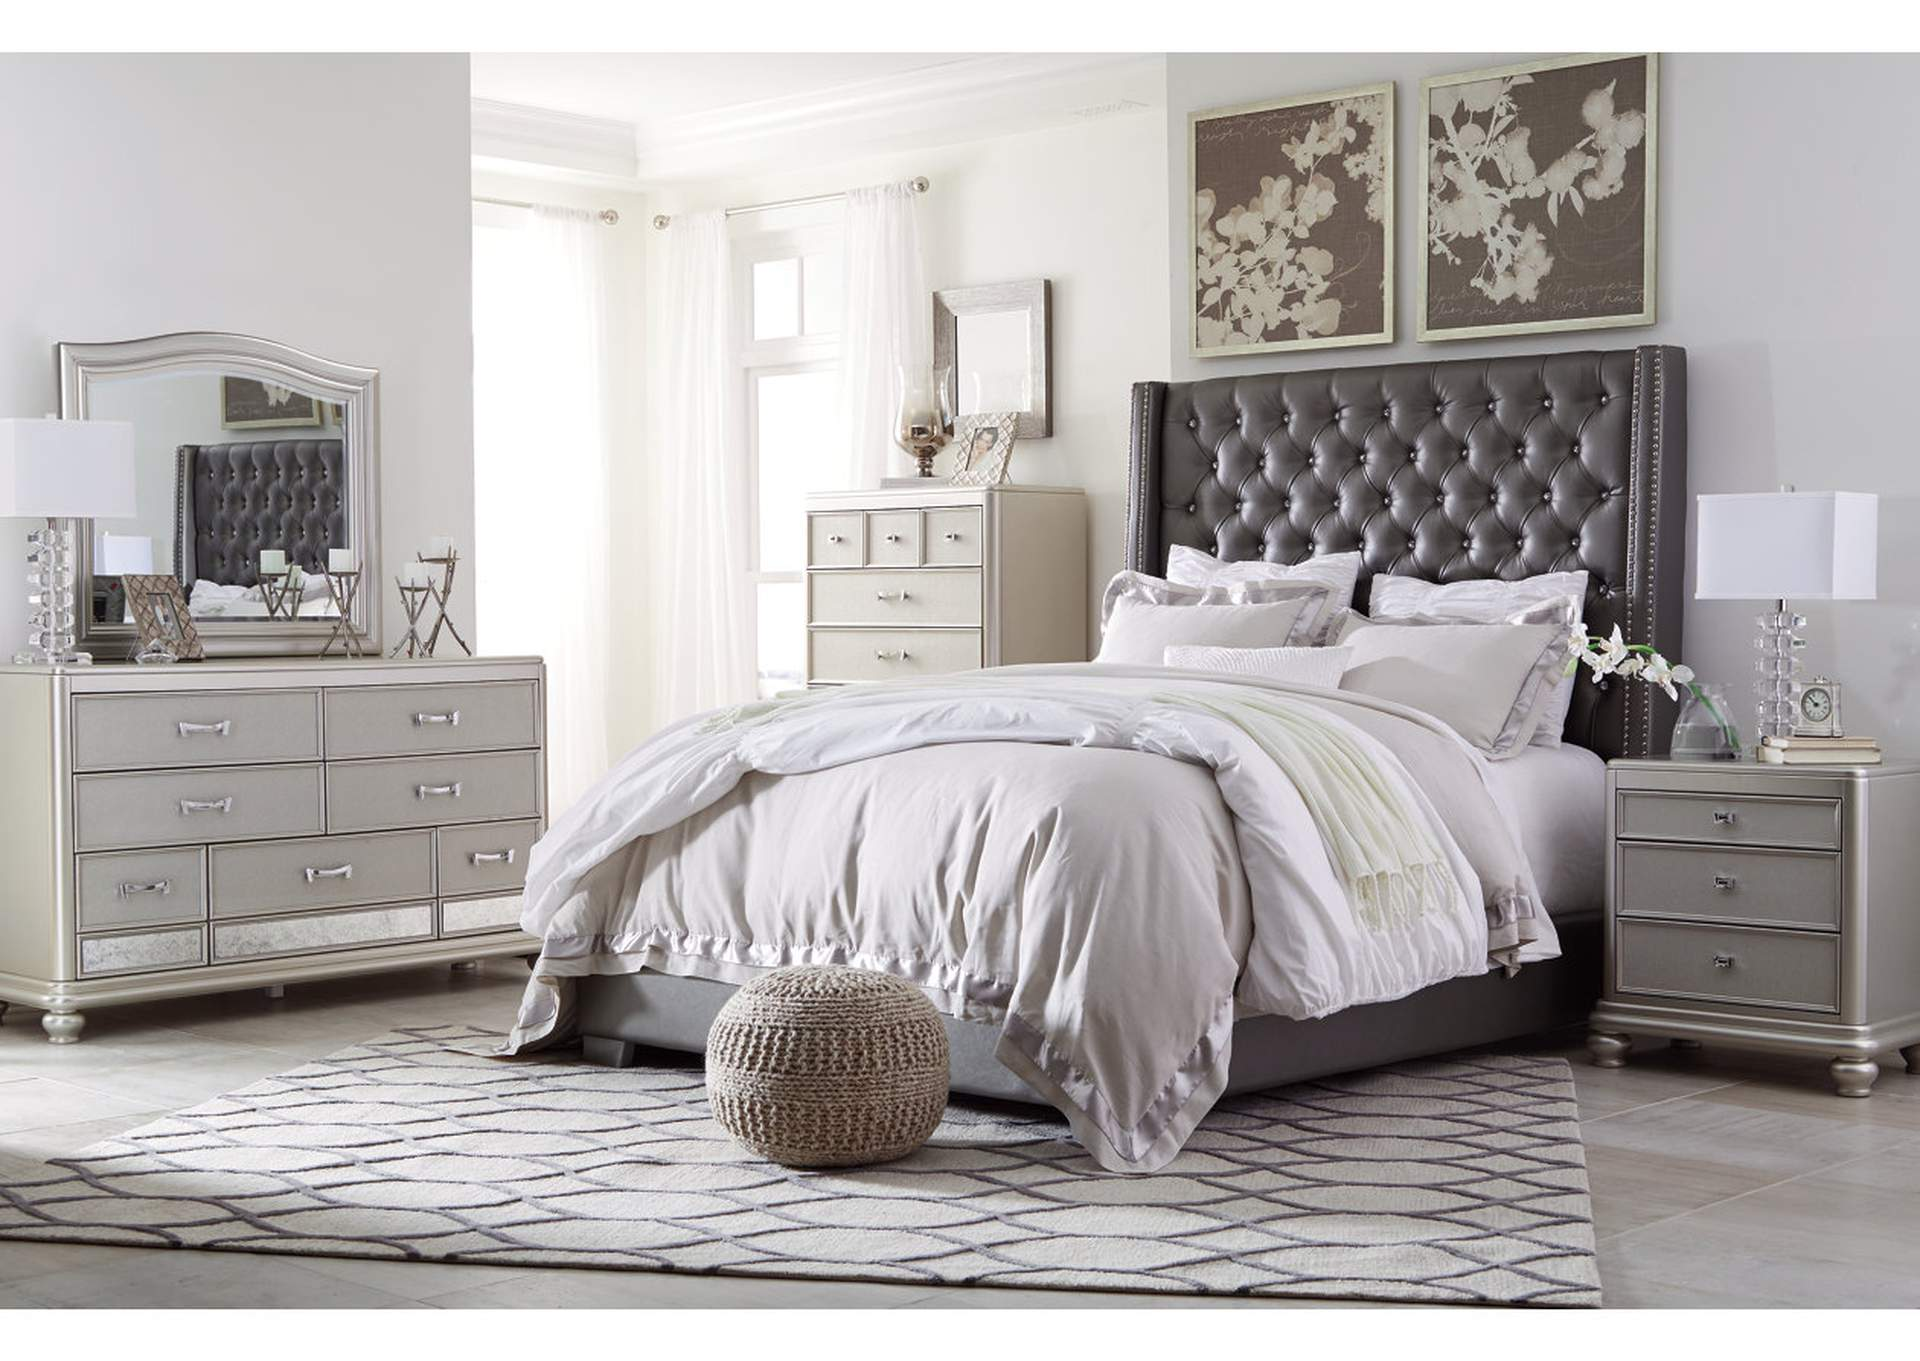 Coralayne Gray California King Upholstered Bed w/Dresser, Mirror & Nightstand,Signature Design By Ashley